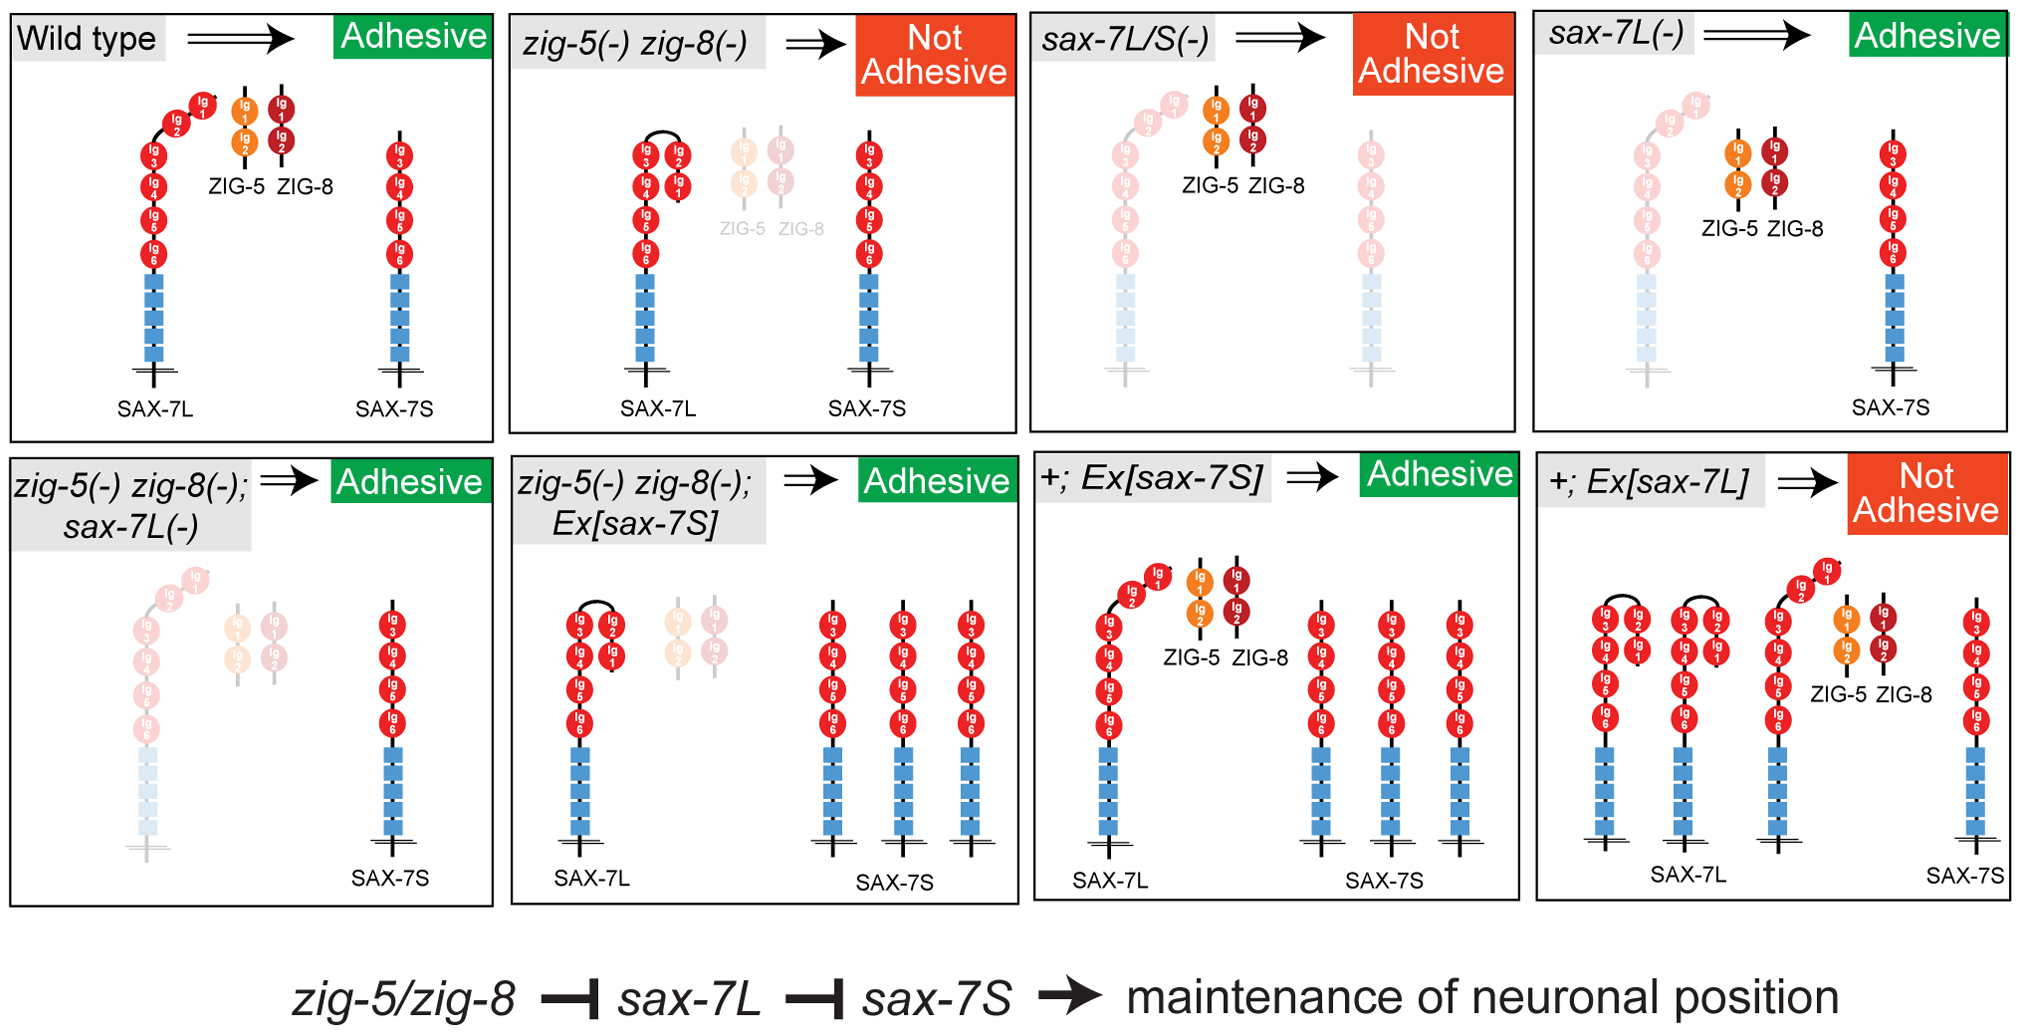 Genetic interactions of <i>zig-5, zig-8</i> and <i>sax-7</i>.